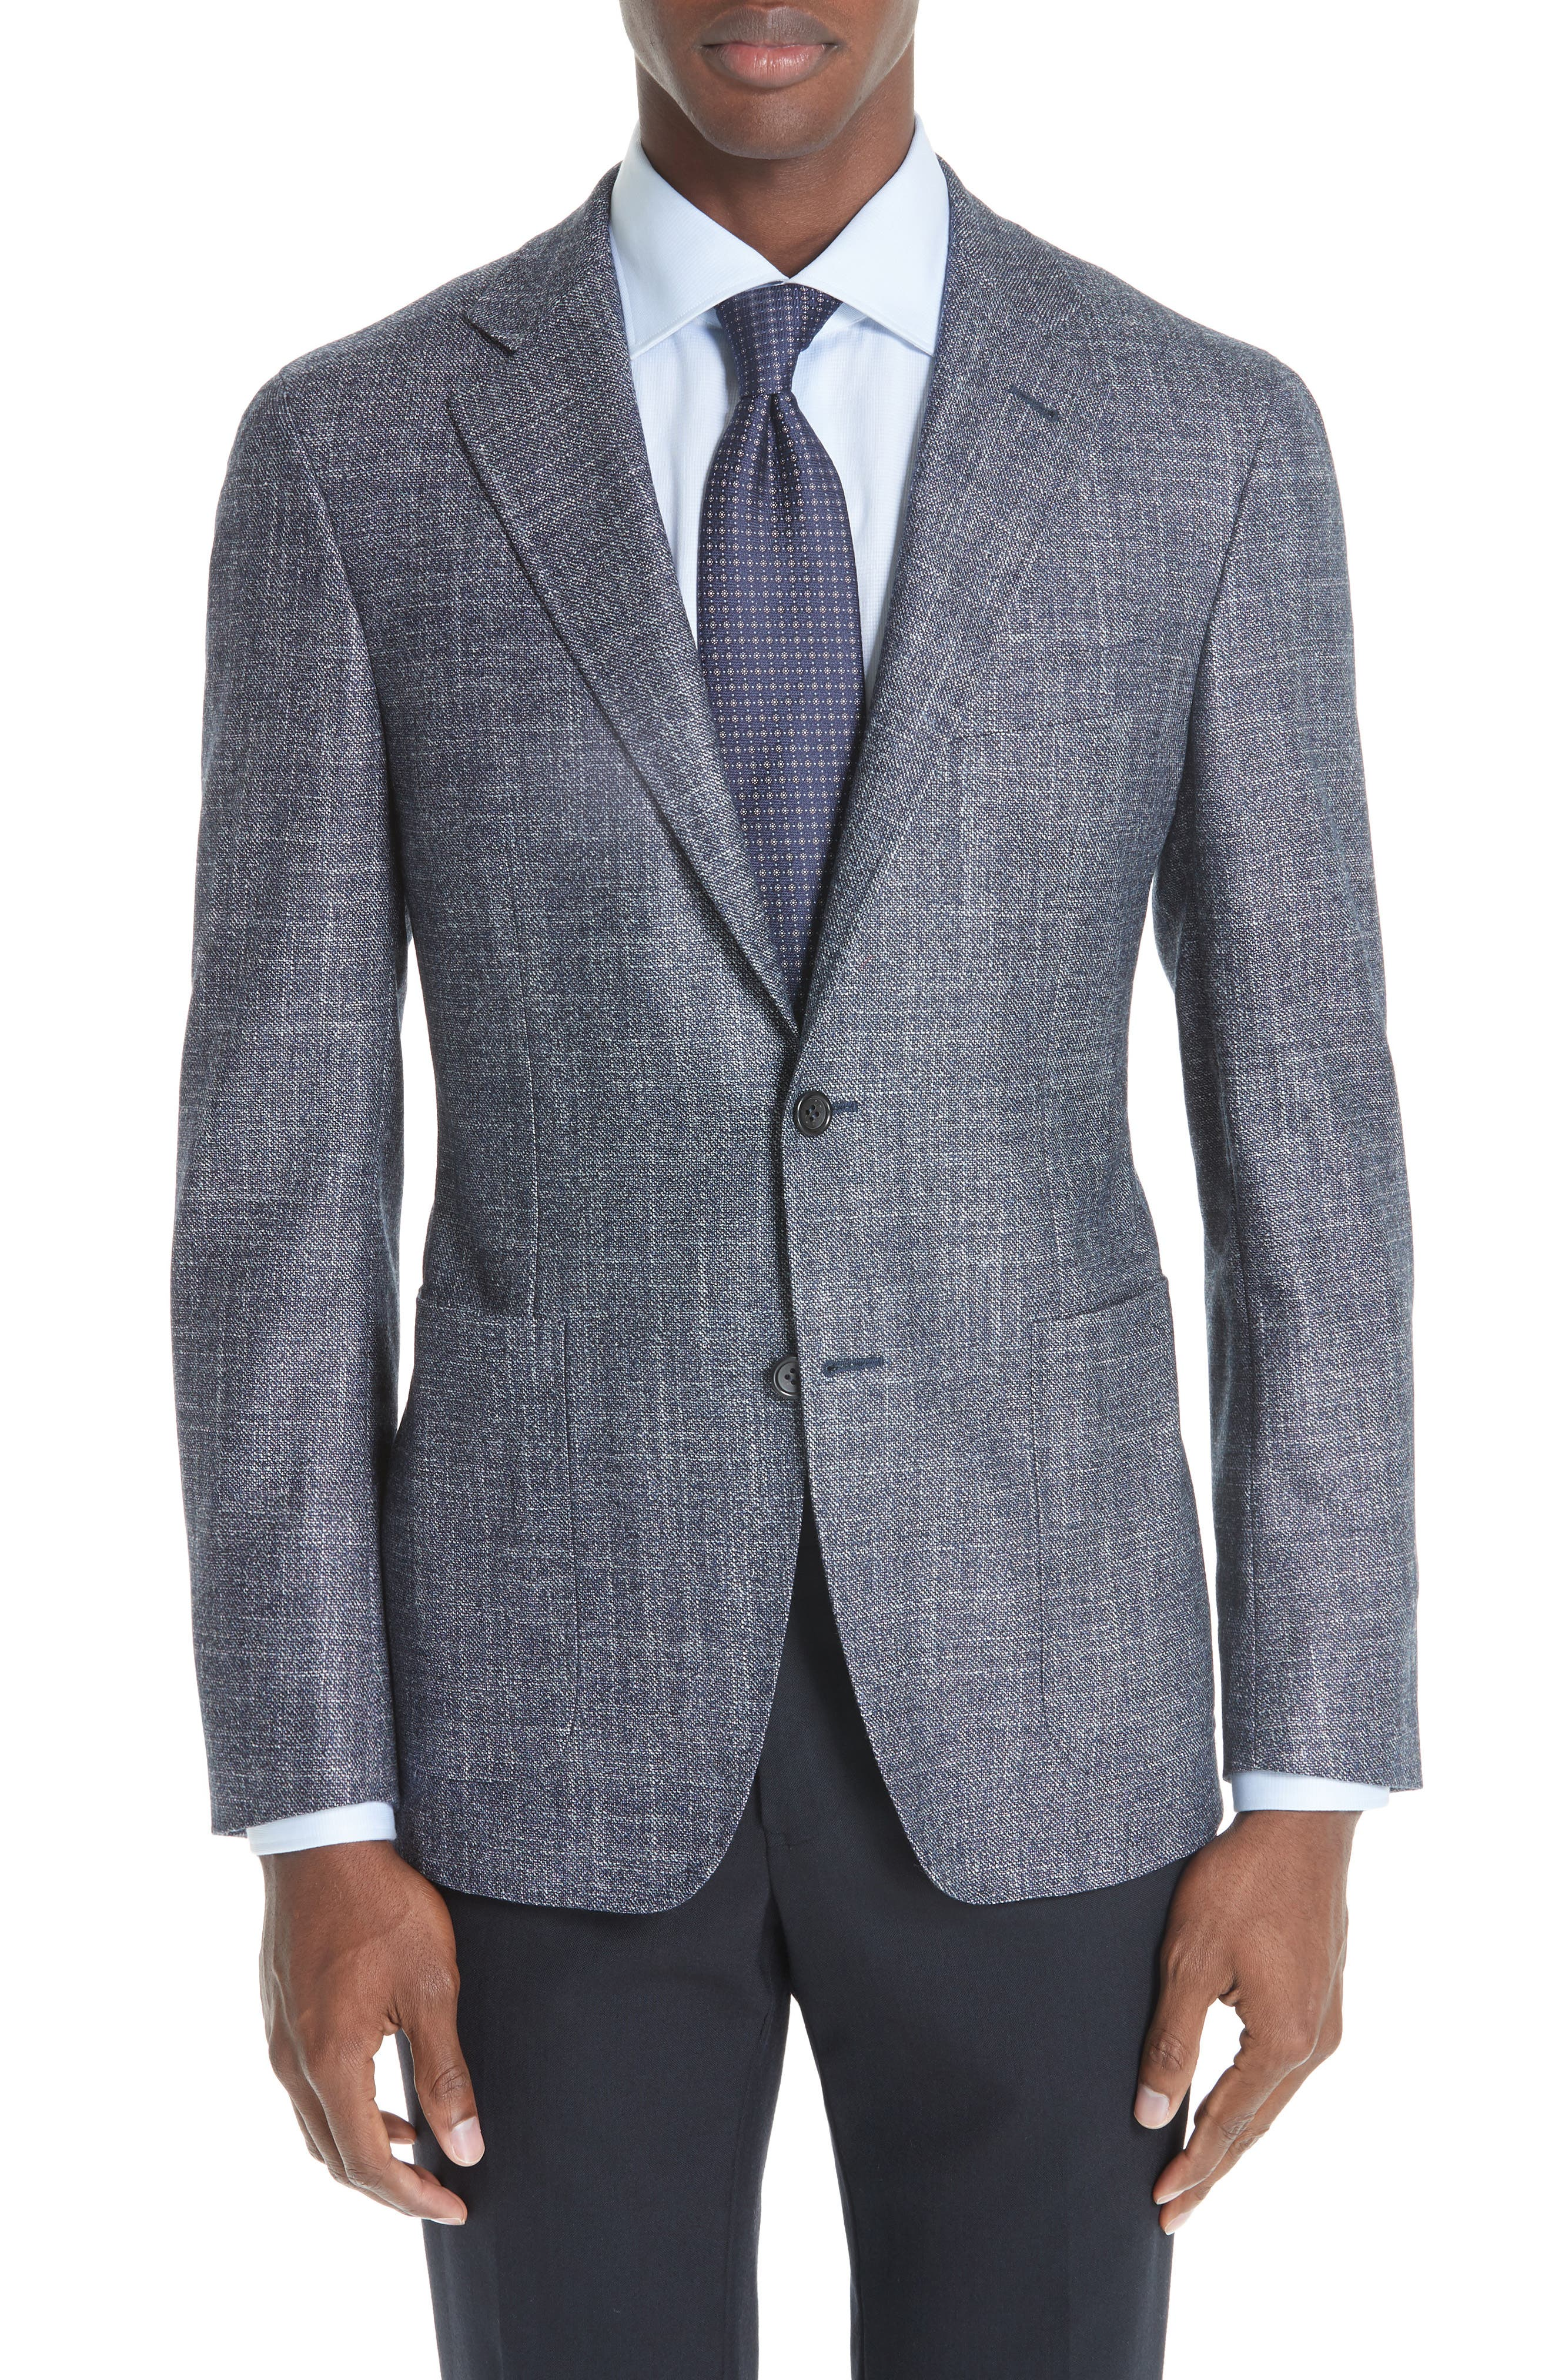 Kei Classic Fit Wool Blend Blazer,                             Main thumbnail 1, color,                             NAVY